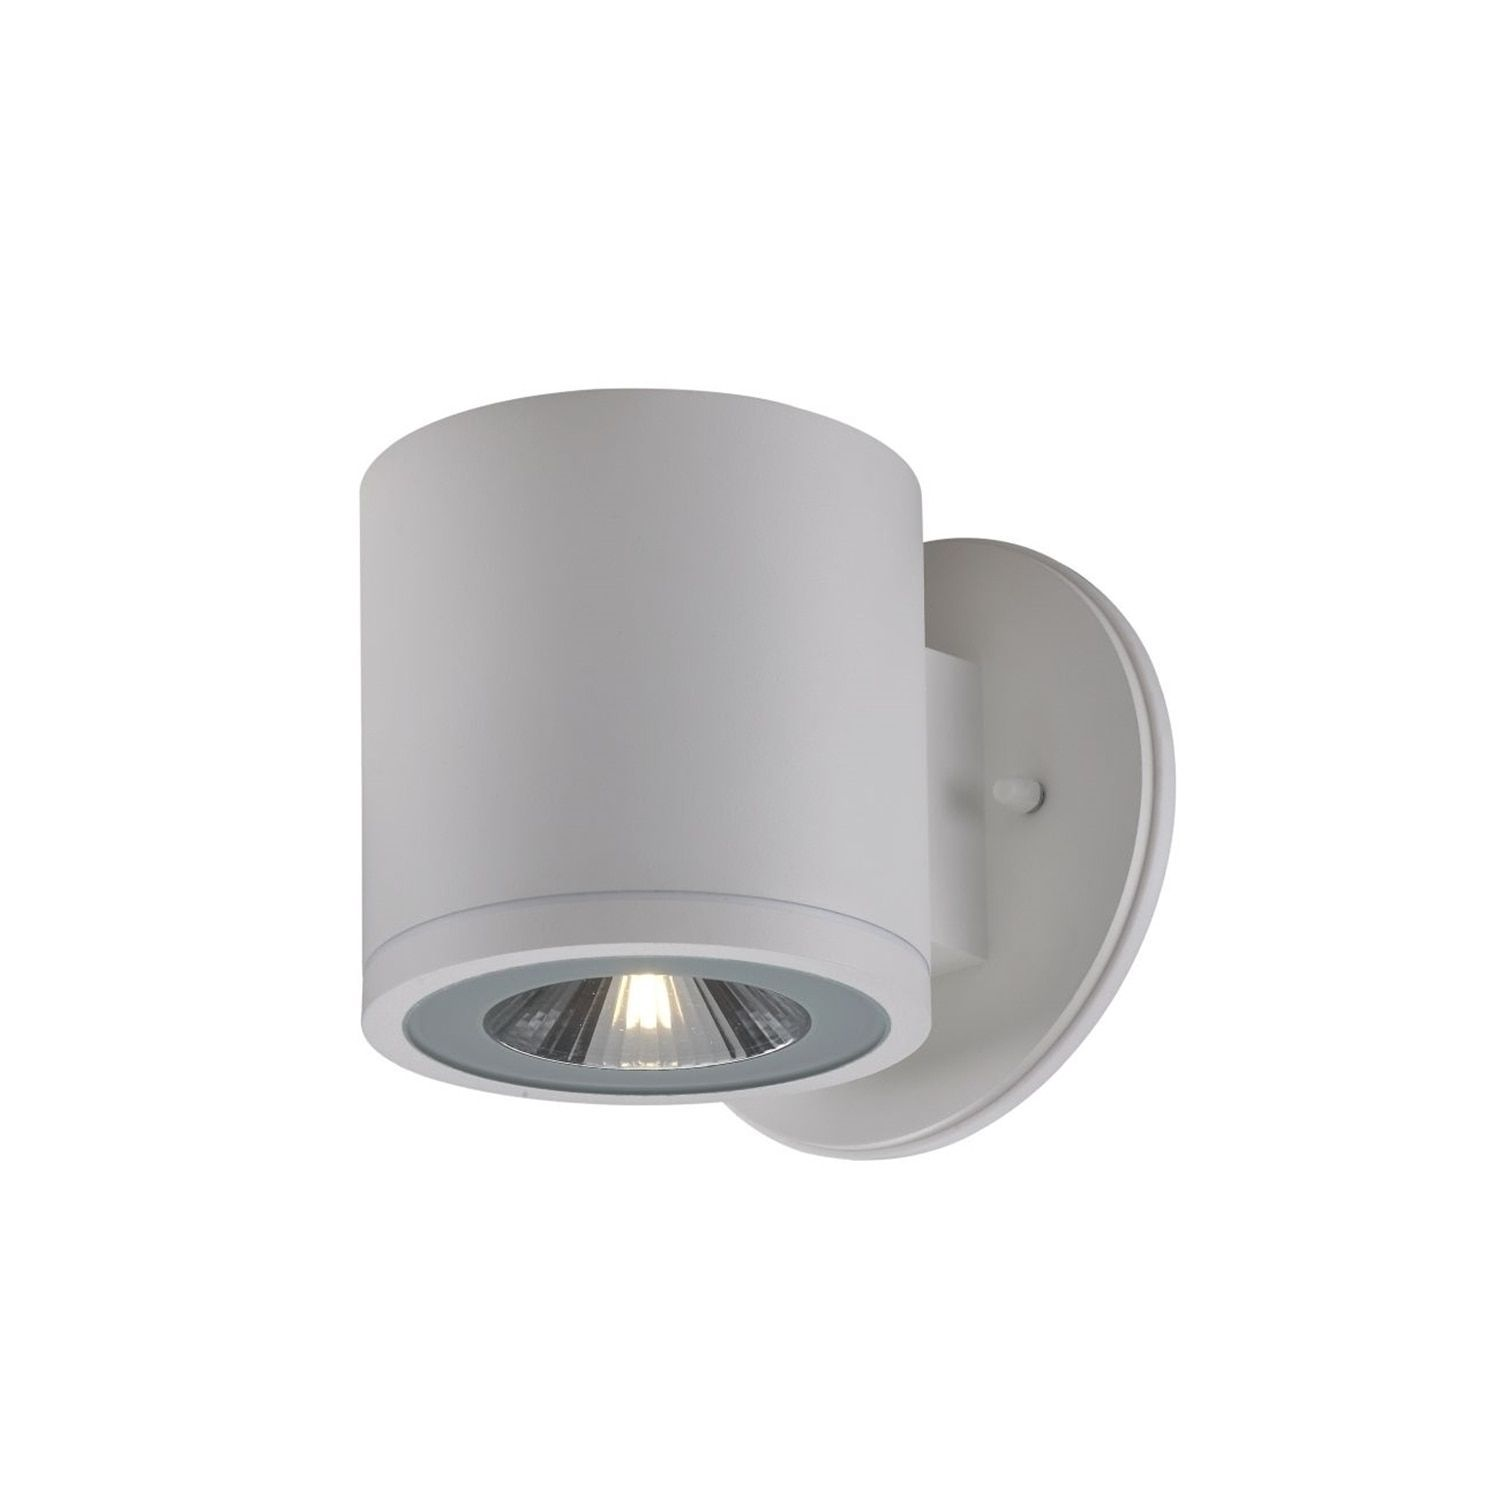 Aussenlen Edelstahl slv lighting big rox led white 7 5 wall l white aluminum